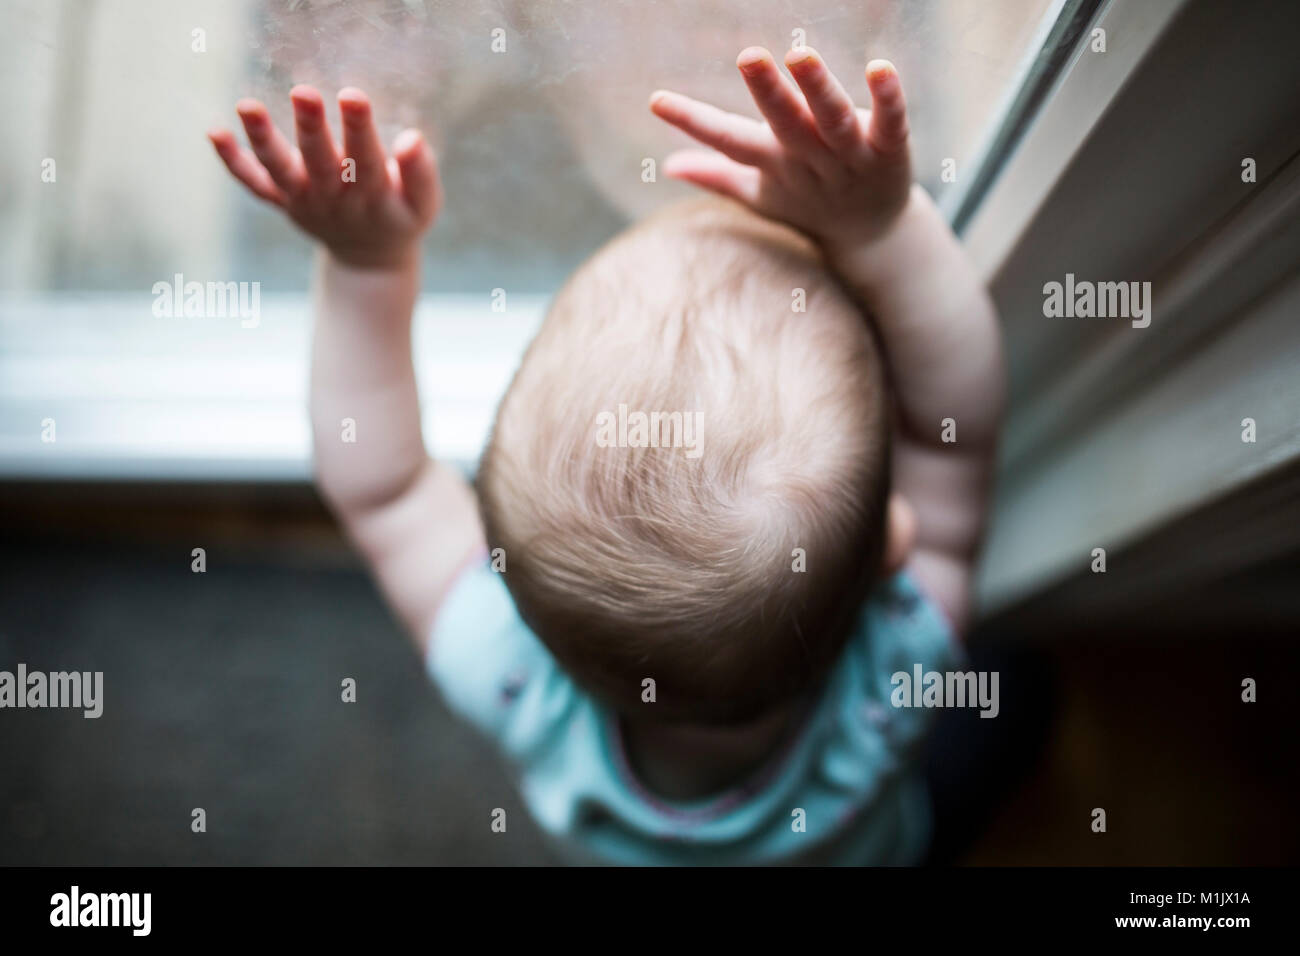 High Angle View of Baby with Hands on Window - Stock Image